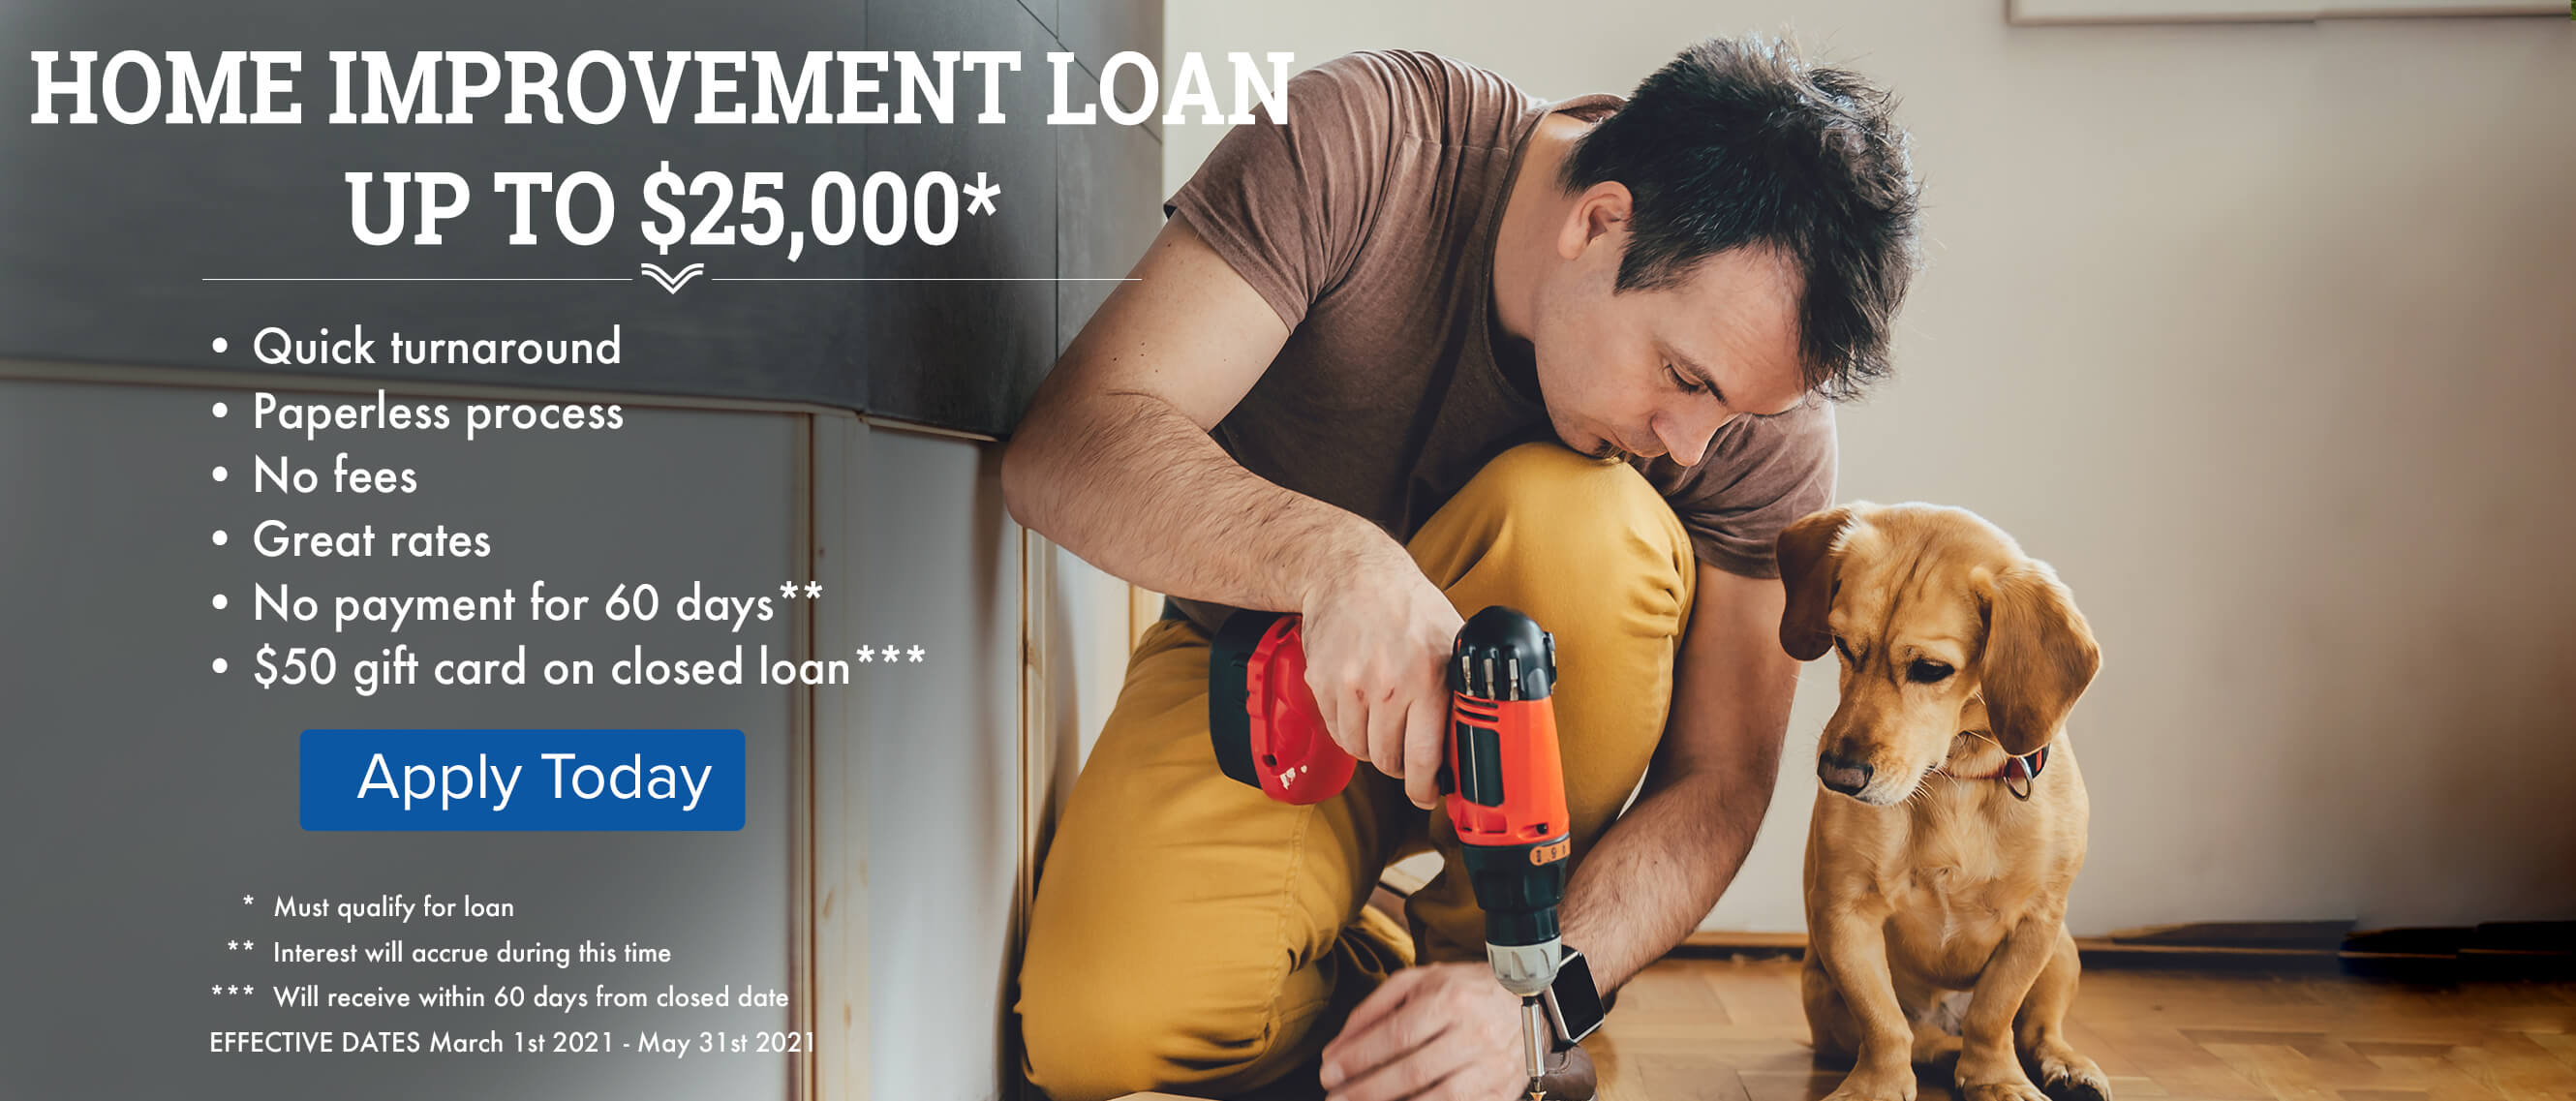 Home Improvement Loan Up to $25,000, Apply Today